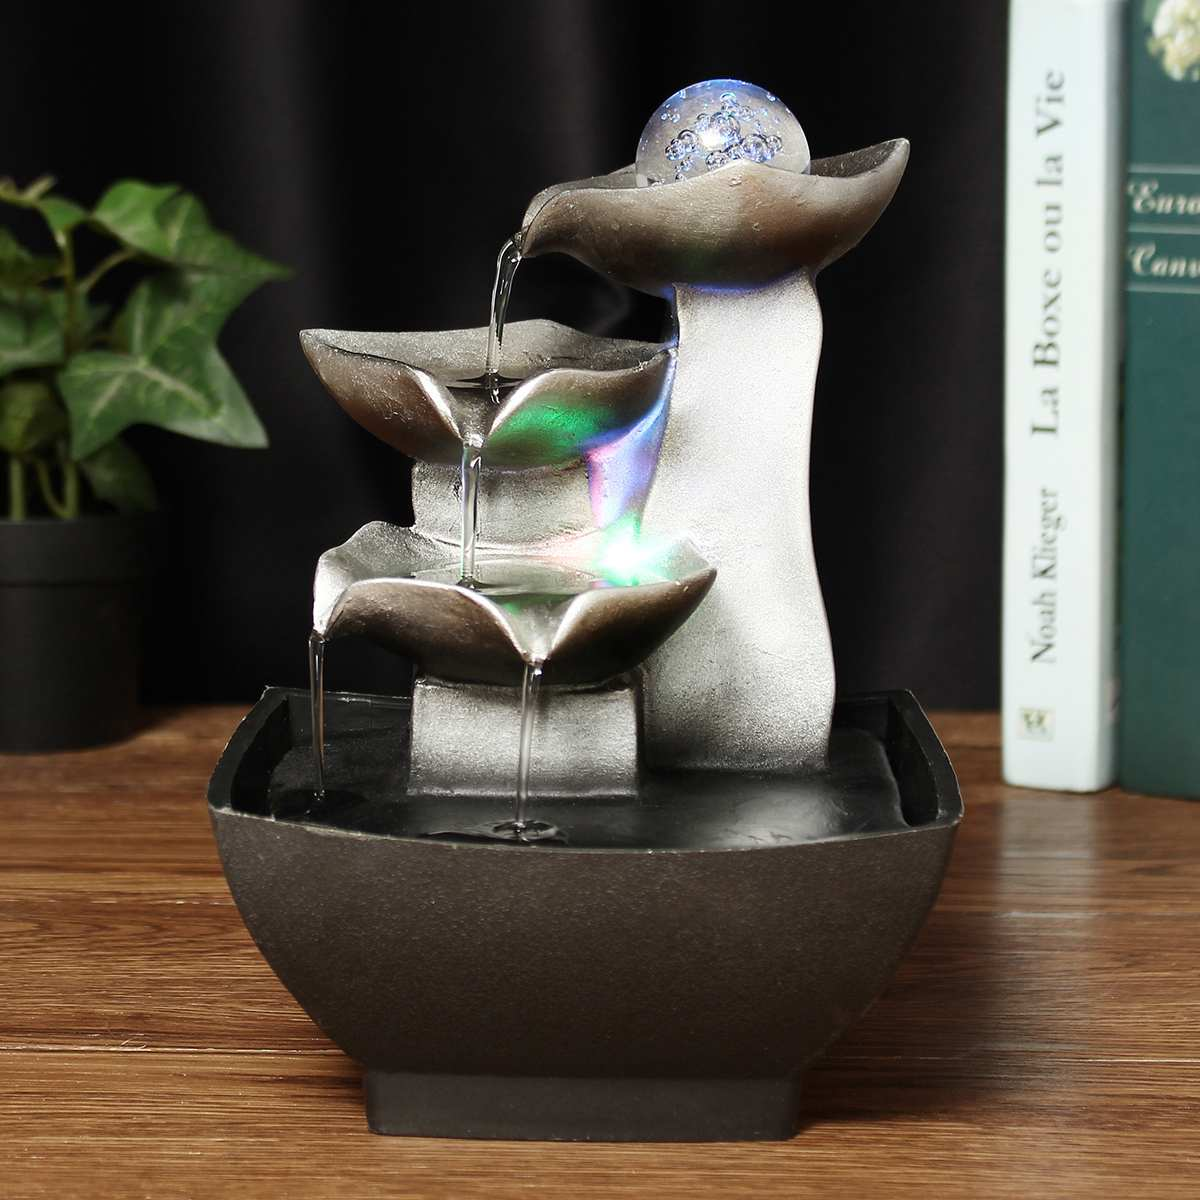 Rockery Relaxation Indoor <font><b>Fountain</b></font> Waterfall Feng Shui Desktop <font><b>Water</b></font> Sound Table Ornaments Crafts <font><b>Home</b></font> <font><b>Decoration</b></font> Accessories image